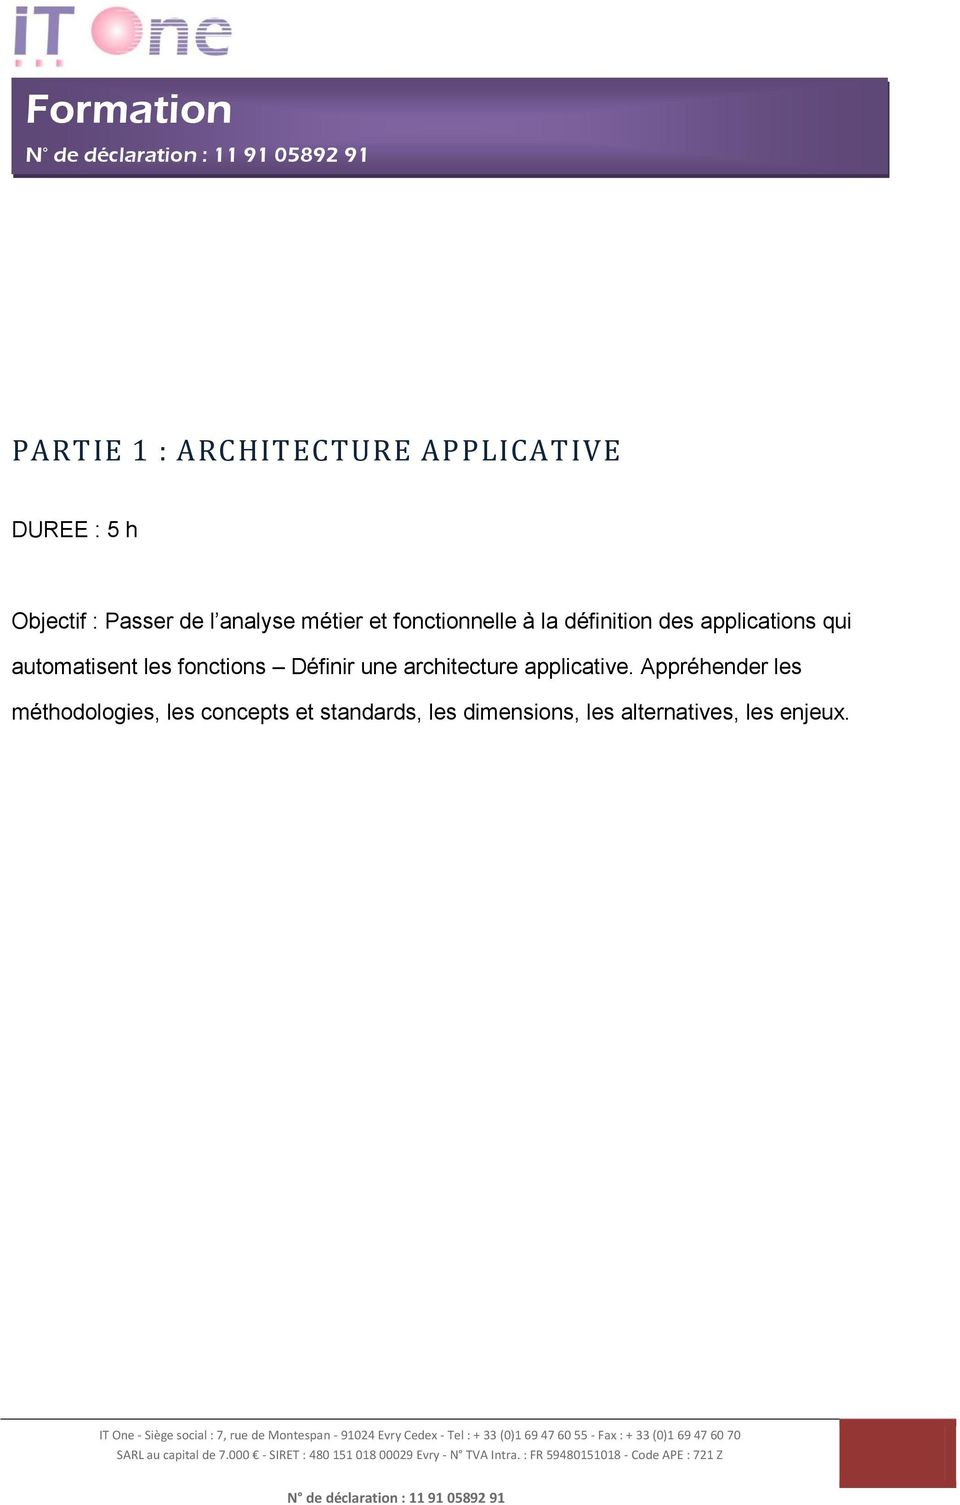 automatisent les fonctions Définir une architecture applicative.